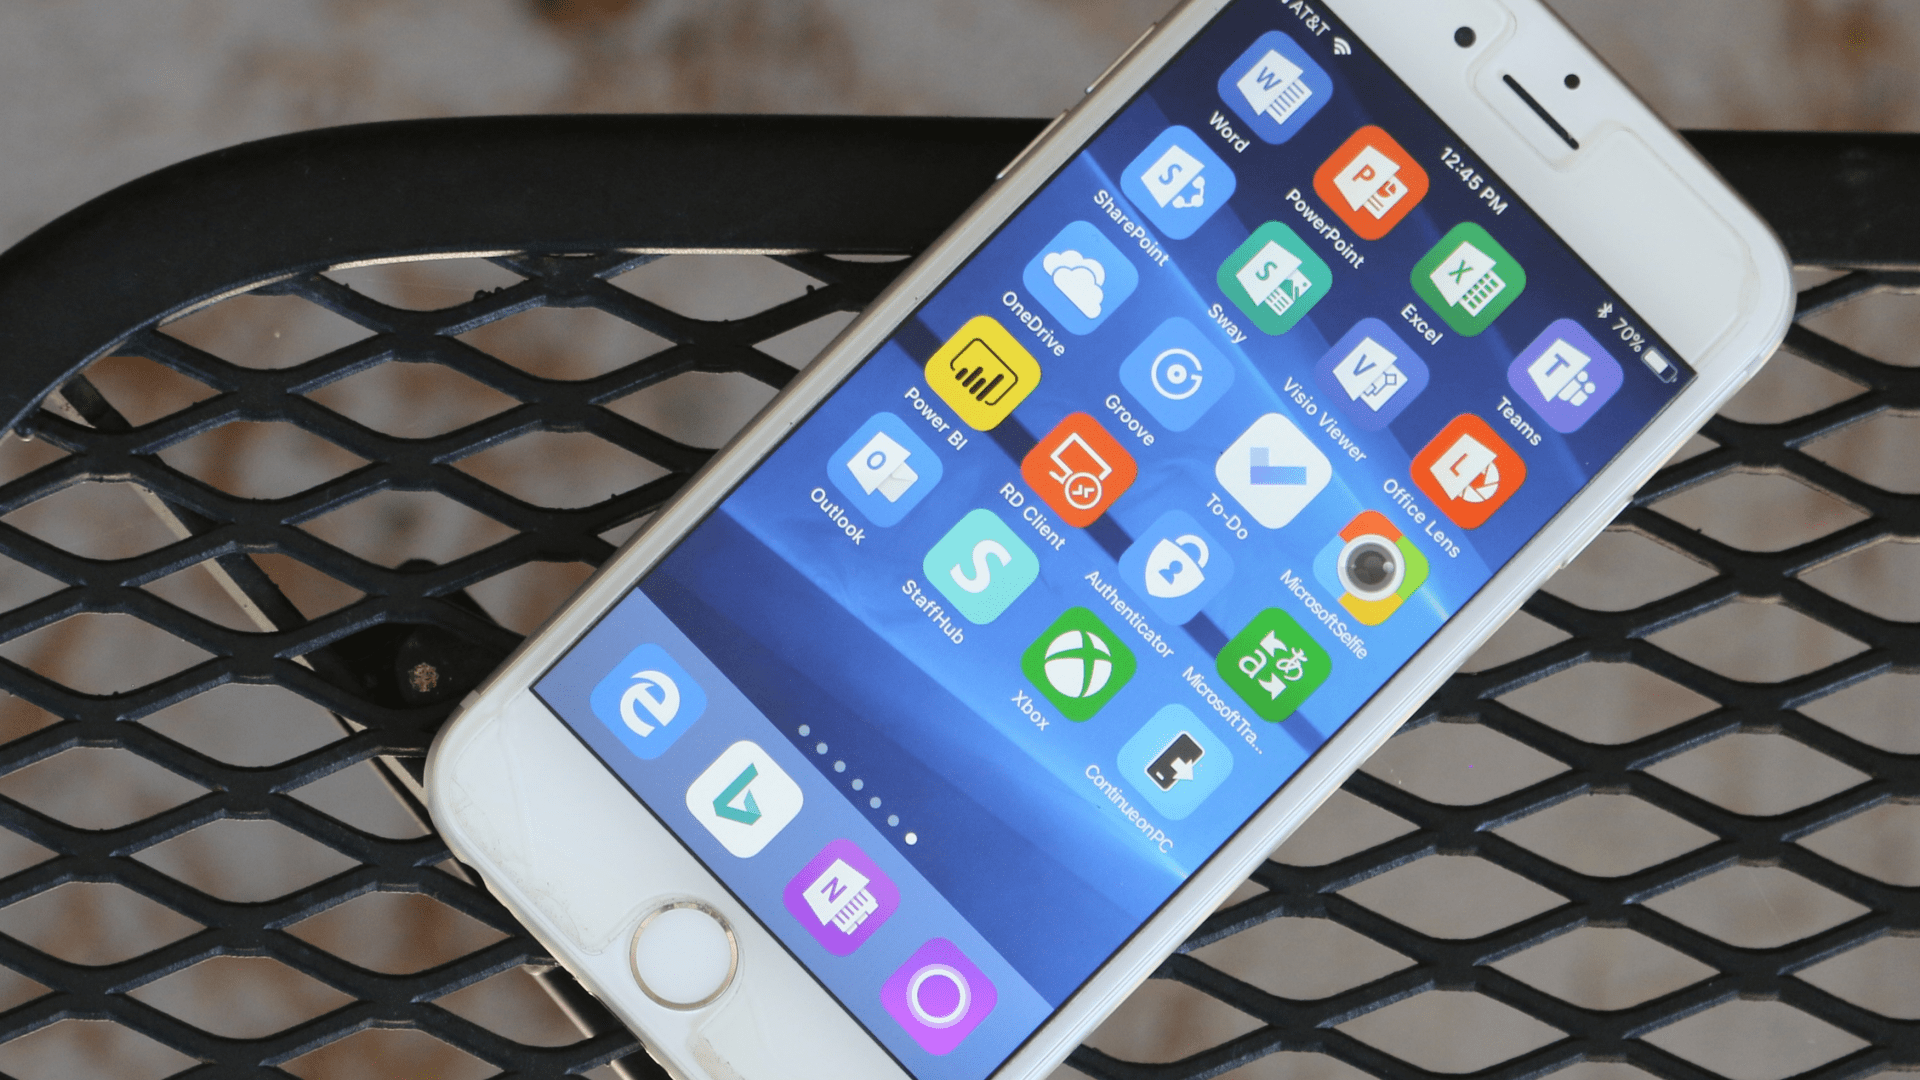 Microsoft Edge updates on iOS with new Today screen